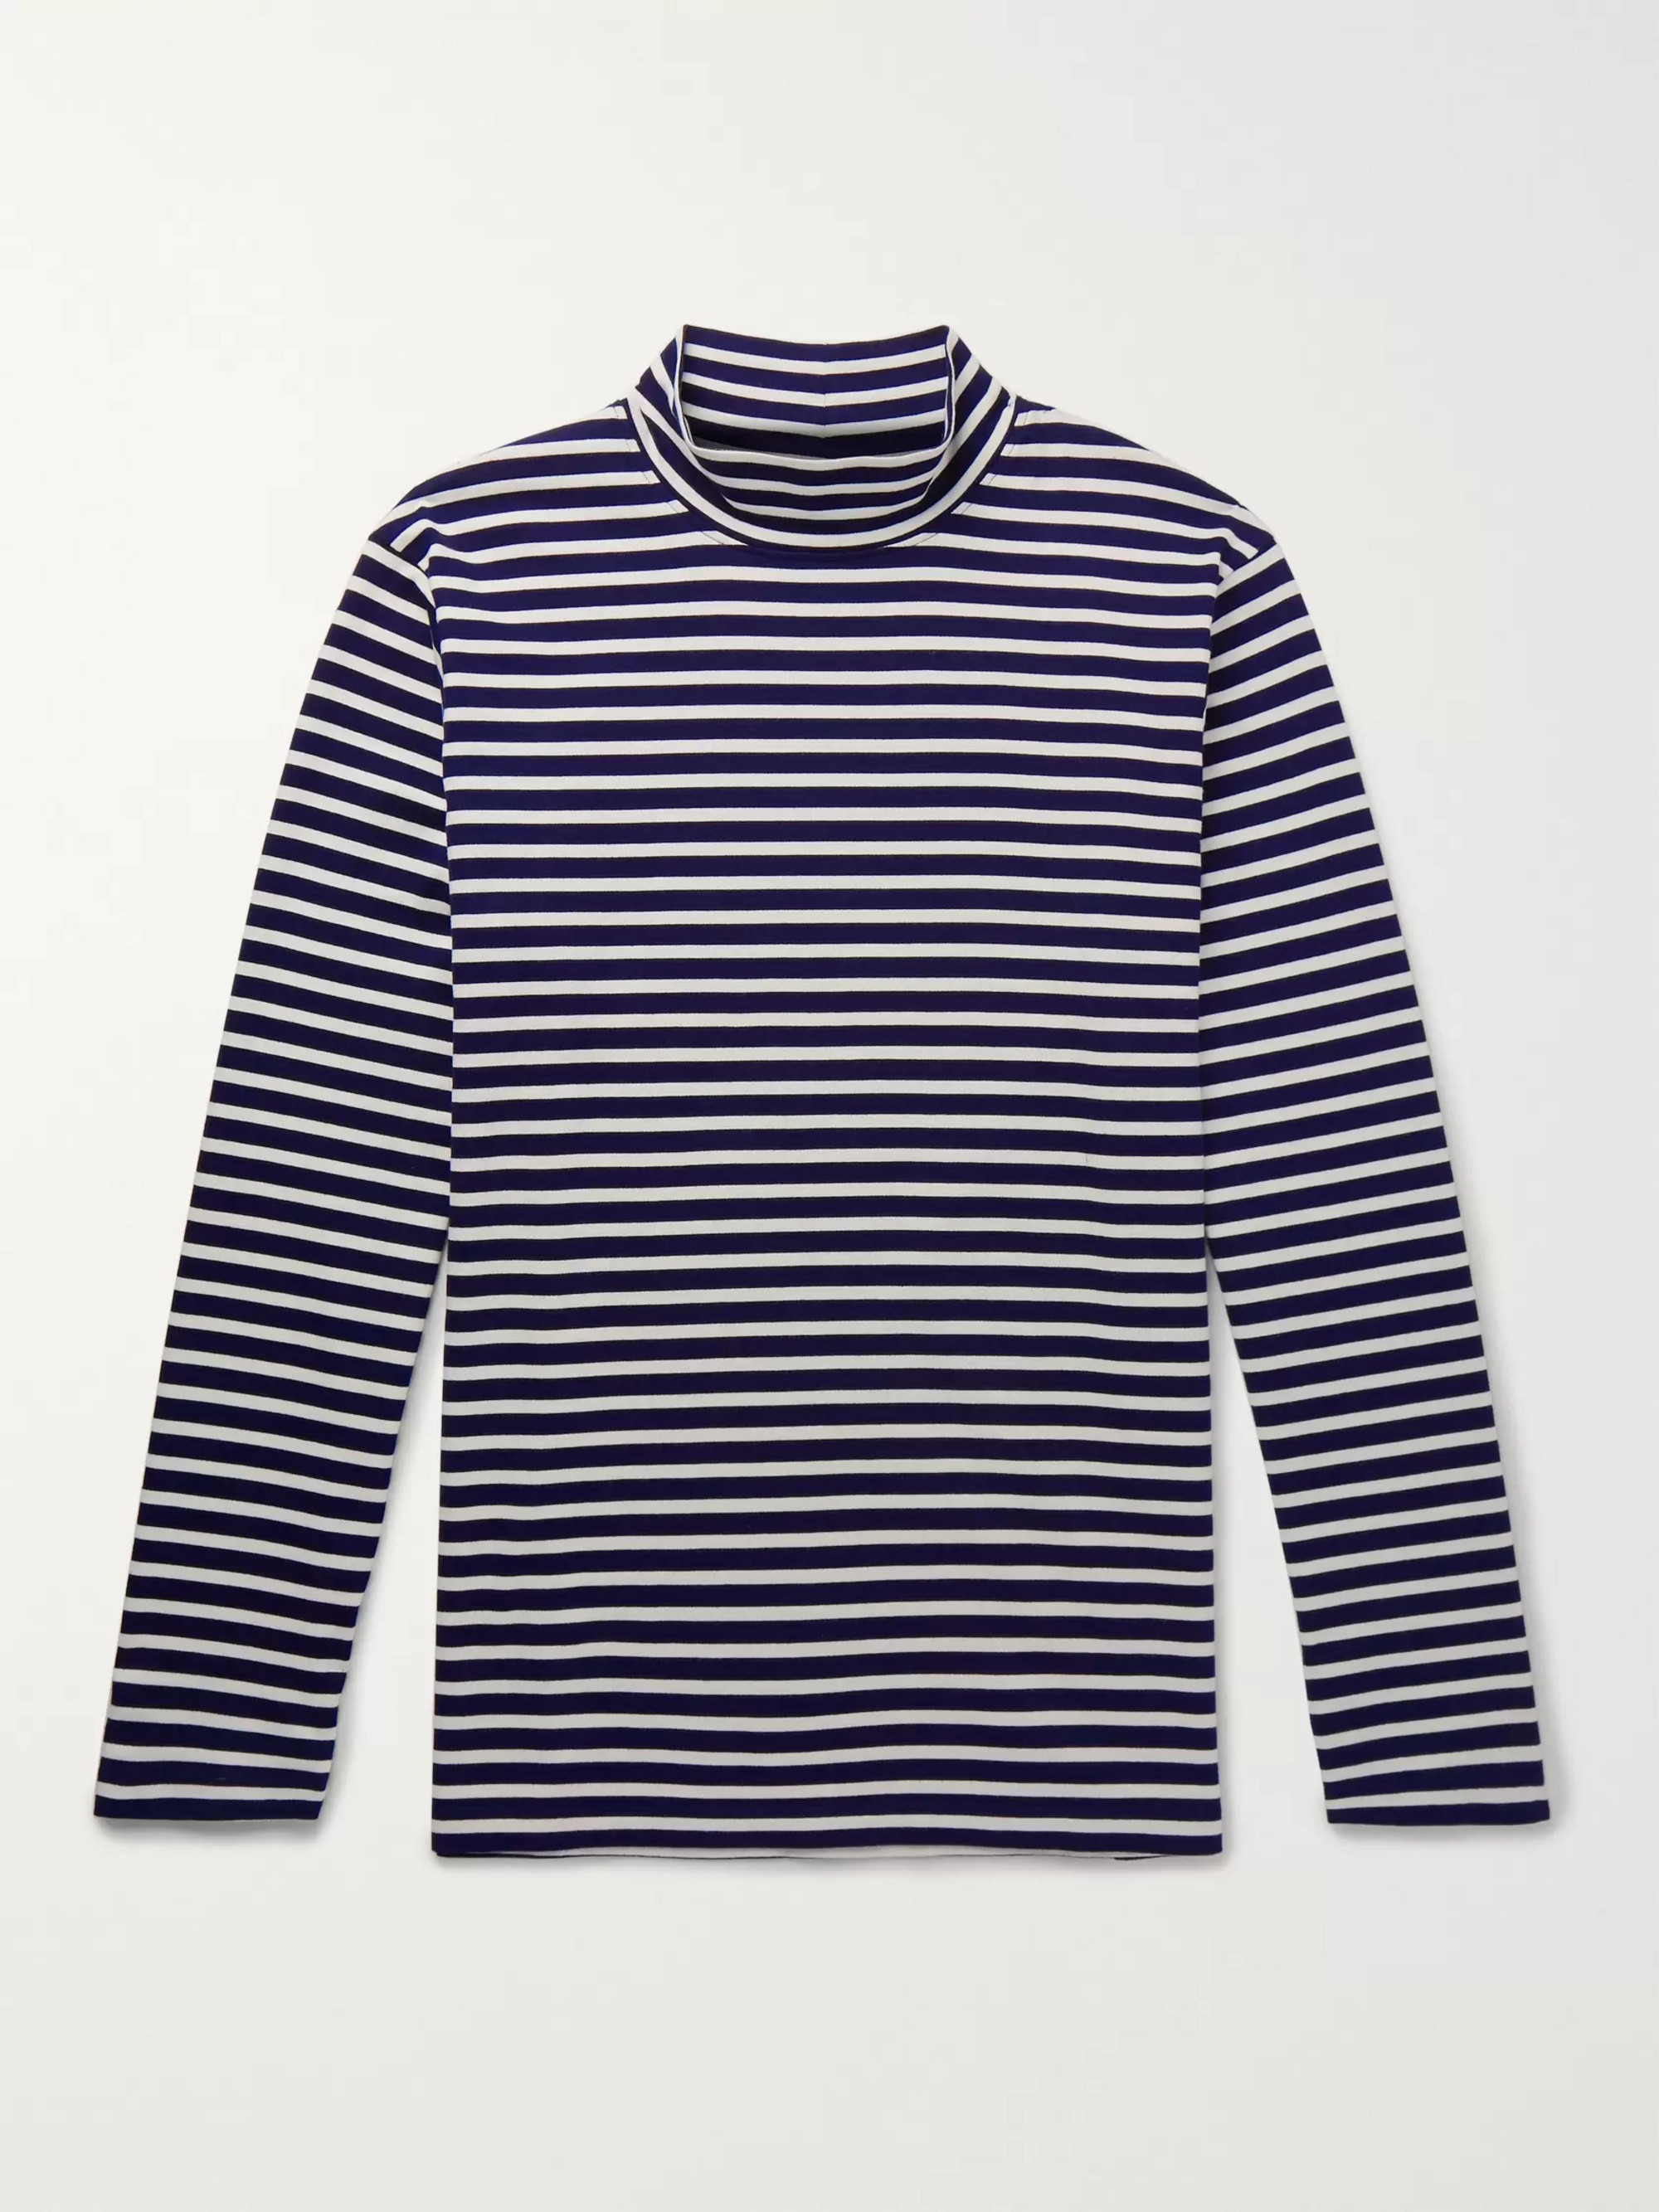 Mr P. Striped Cotton-Jersey Rollneck T-shirt